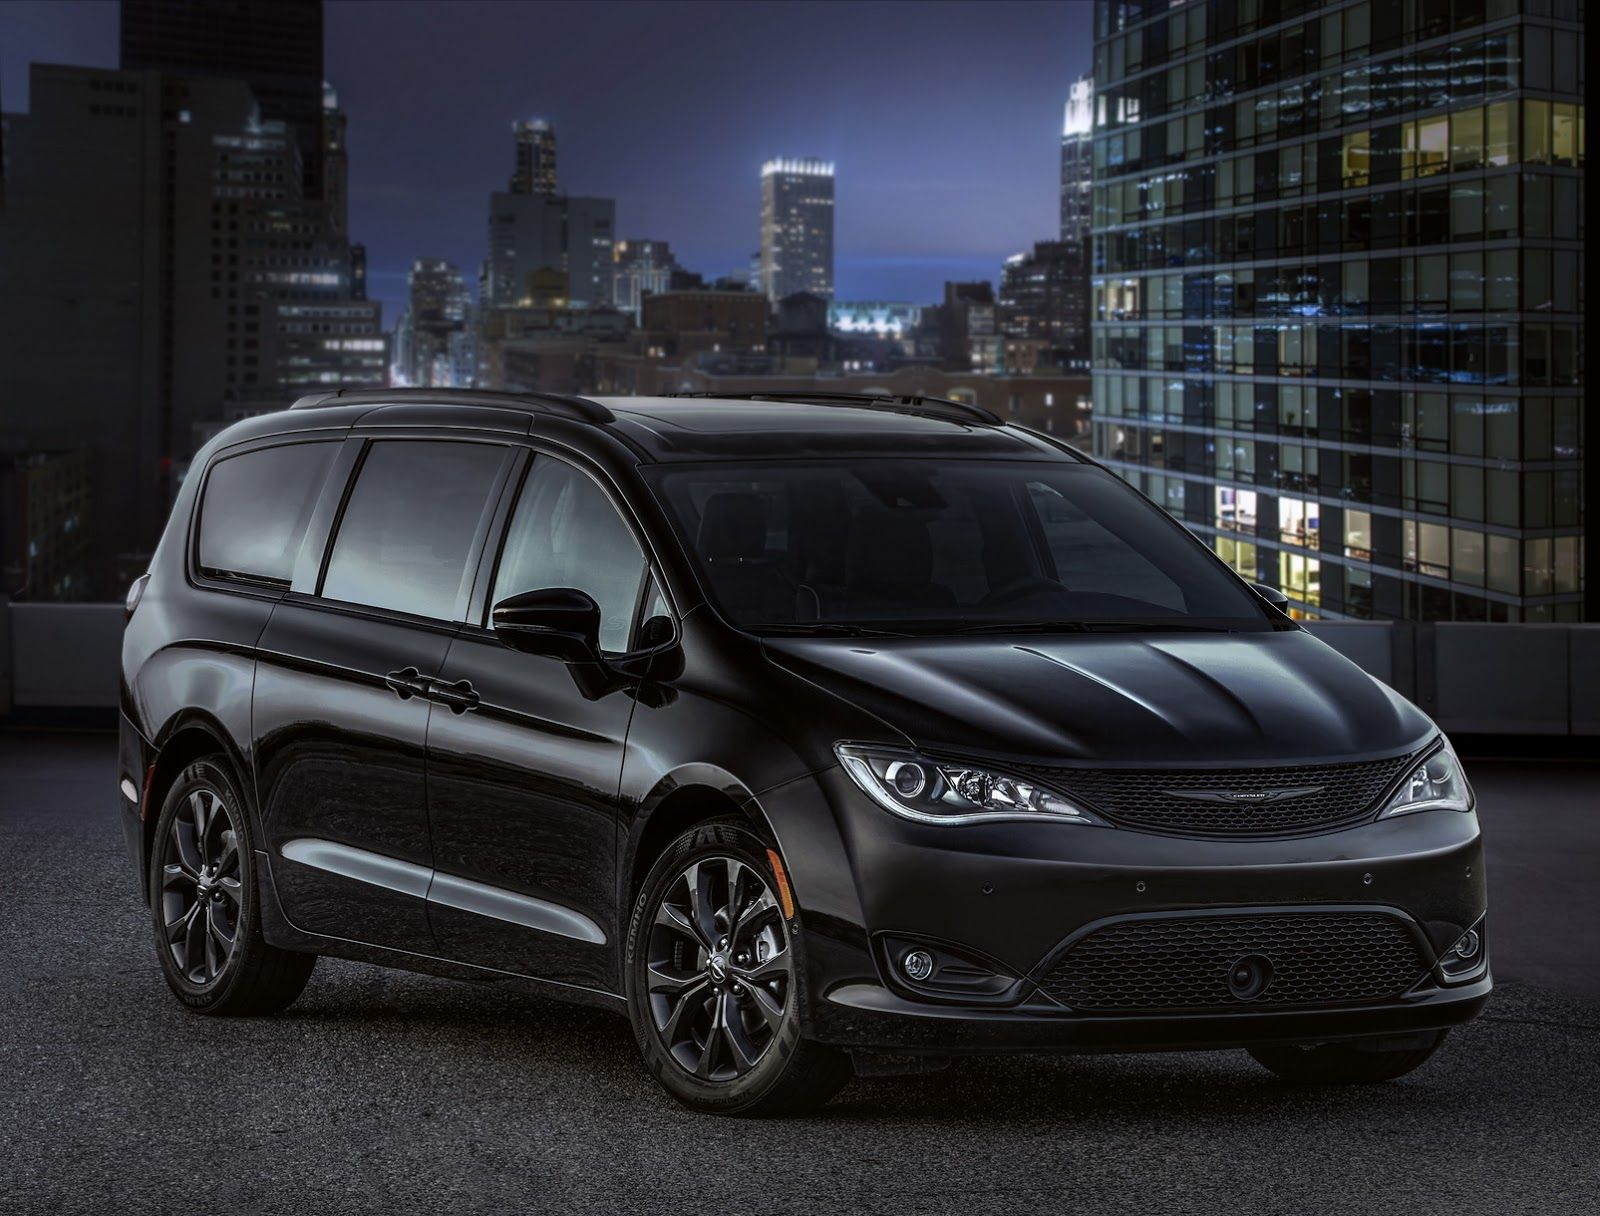 New S Appearance Pack Gives The Chrysler Pacifica More Attitude